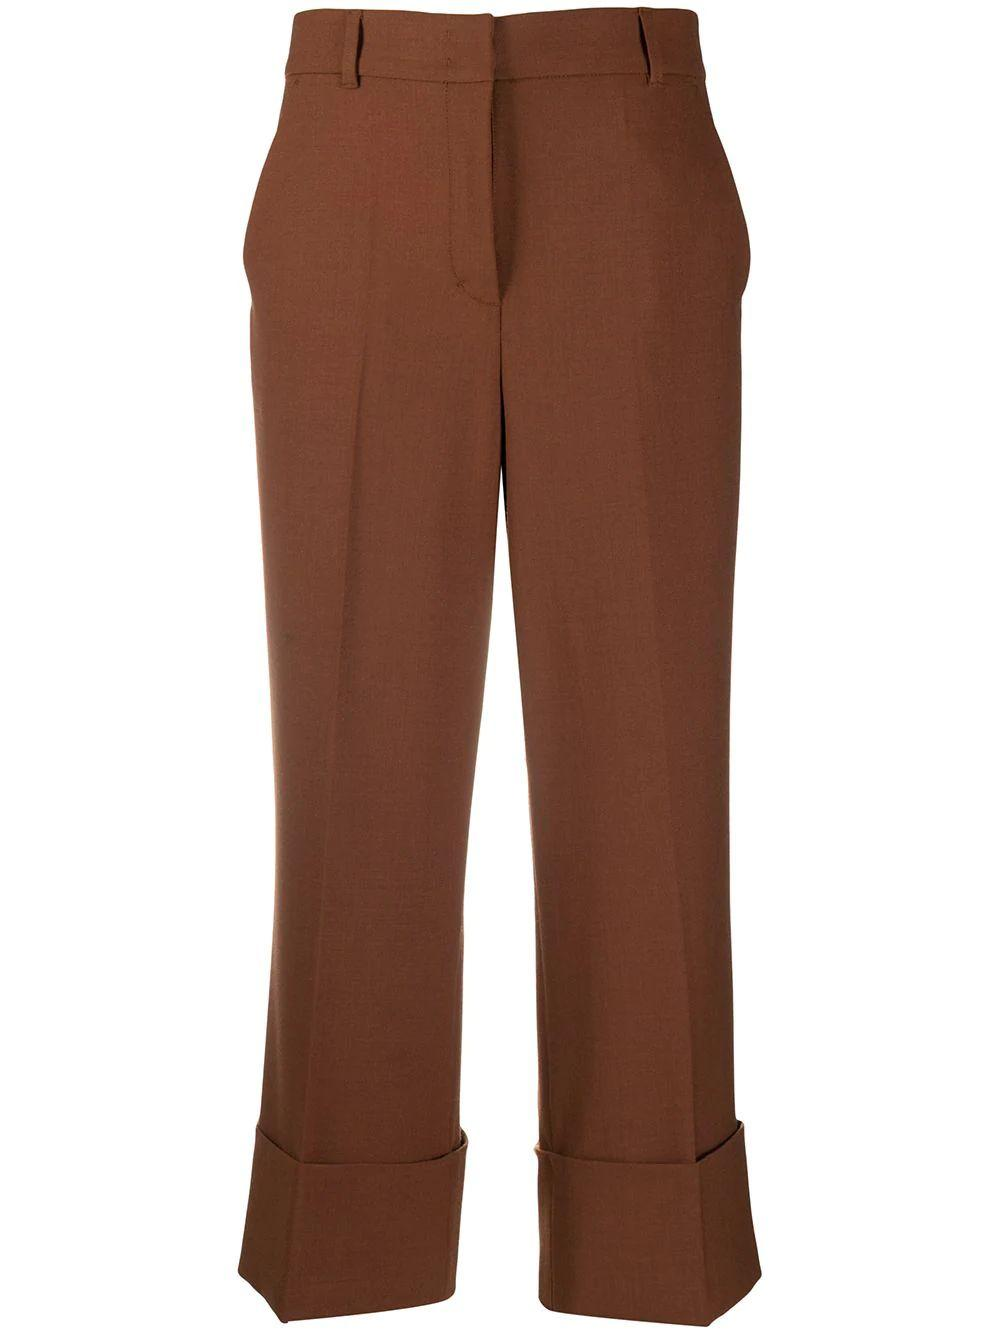 The New Ambition Pants Item # 940213